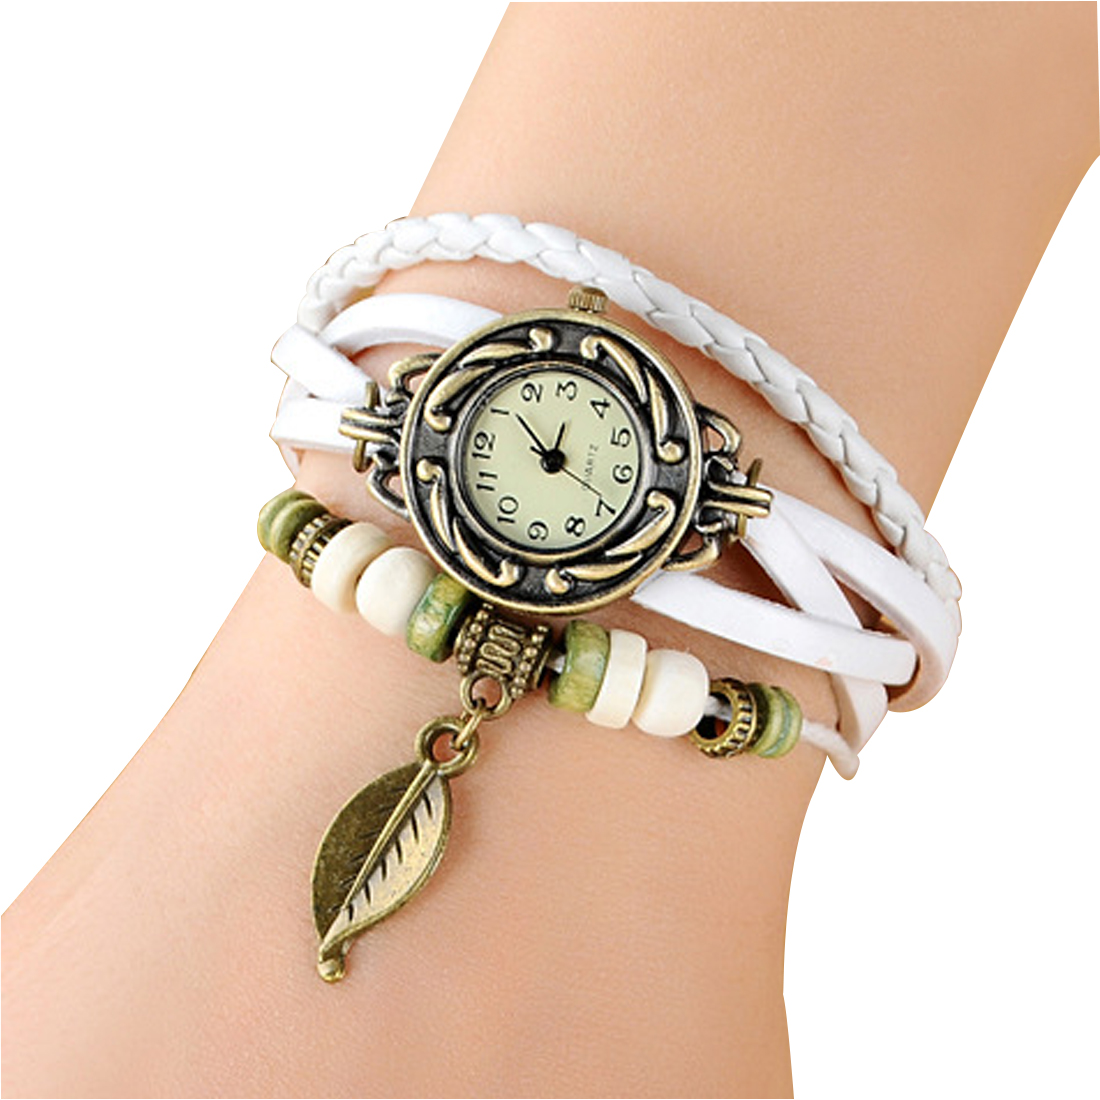 Us 12 51 8 Off 10pcs Lot New Hot S Cow Leather Vintage Watch Women Bracelet Leaf Pendant Las Quartz Wrist In Charm